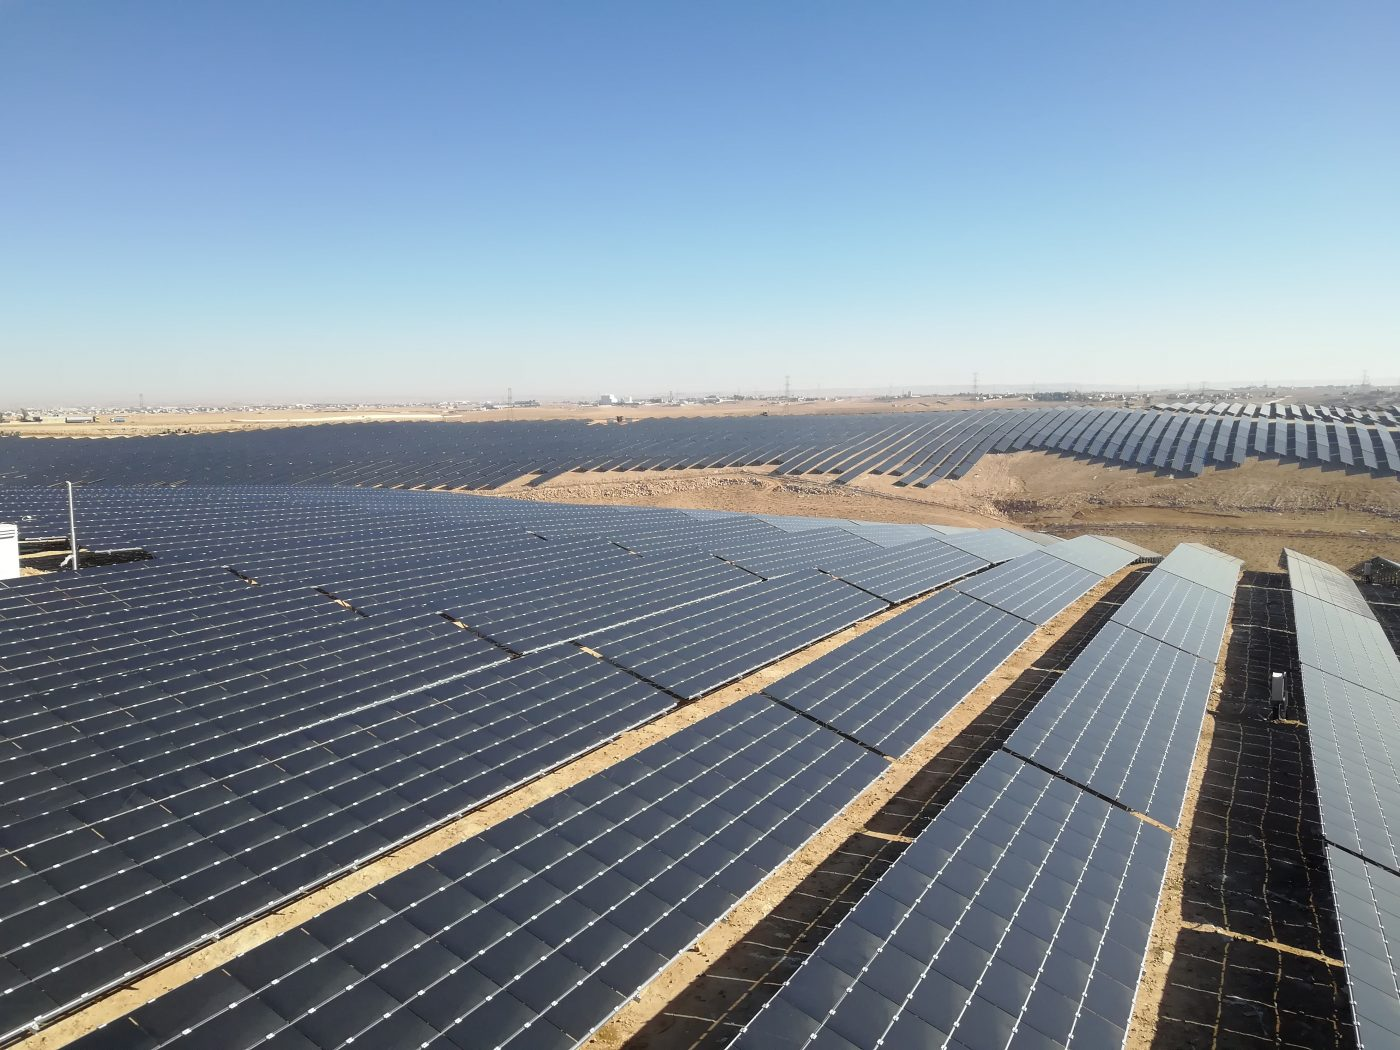 4_South-Amman-Solar-Power-Plant-BELECTRIC